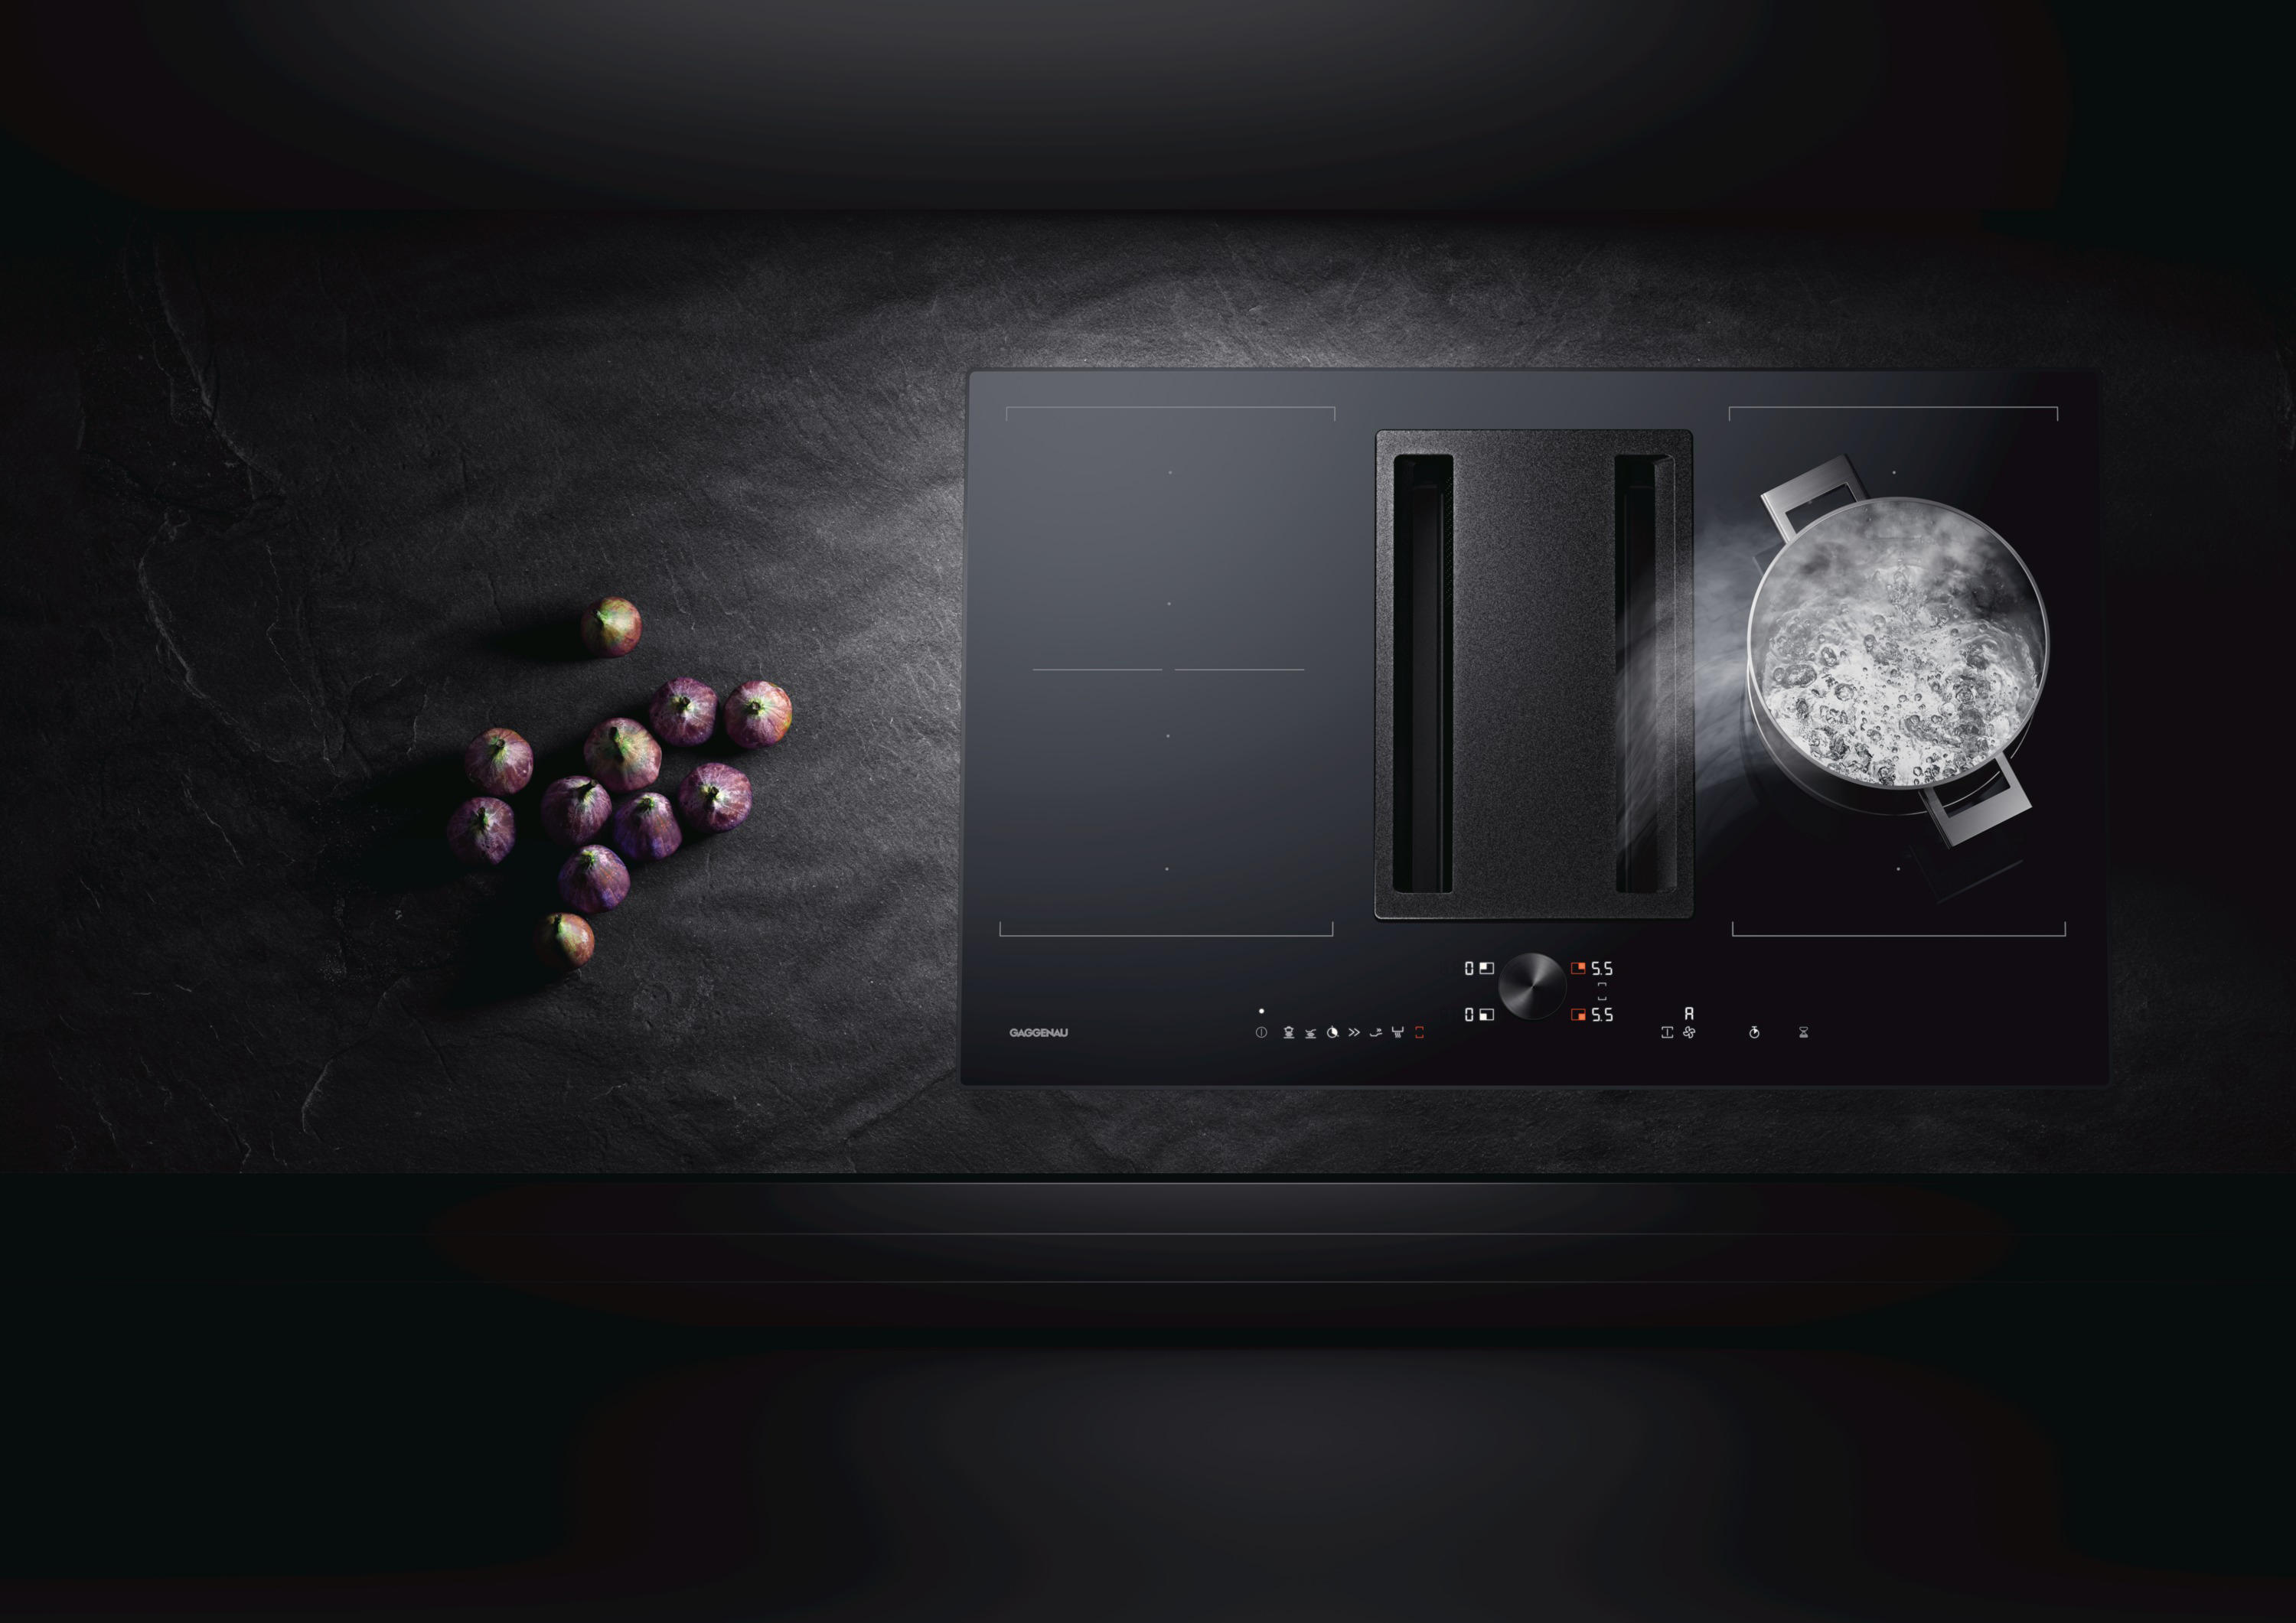 Flex Induction Cooktop With Downdraft Ventilation | CVL 420 By Gaggenau